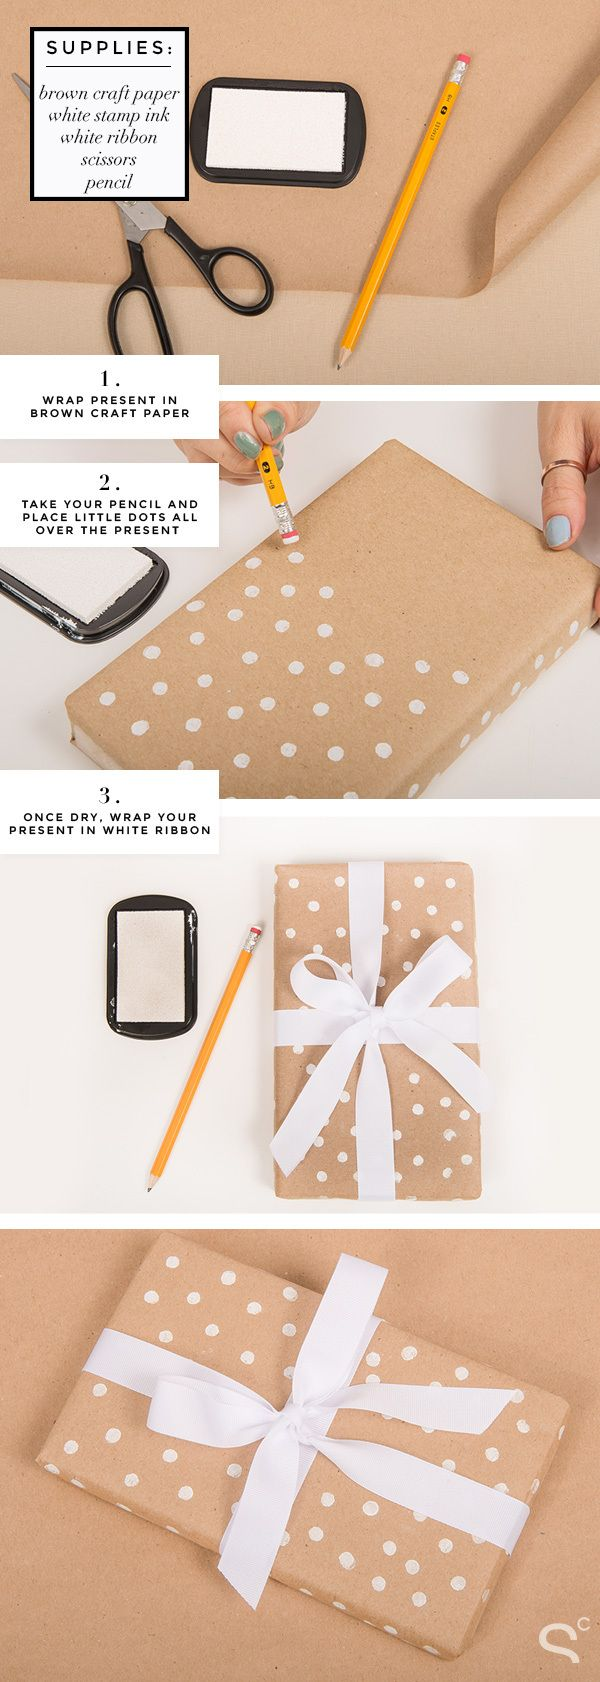 Best Ideas About Wedding Gift Wrapping On Pinterest Gift Wrap Diy Gift ...